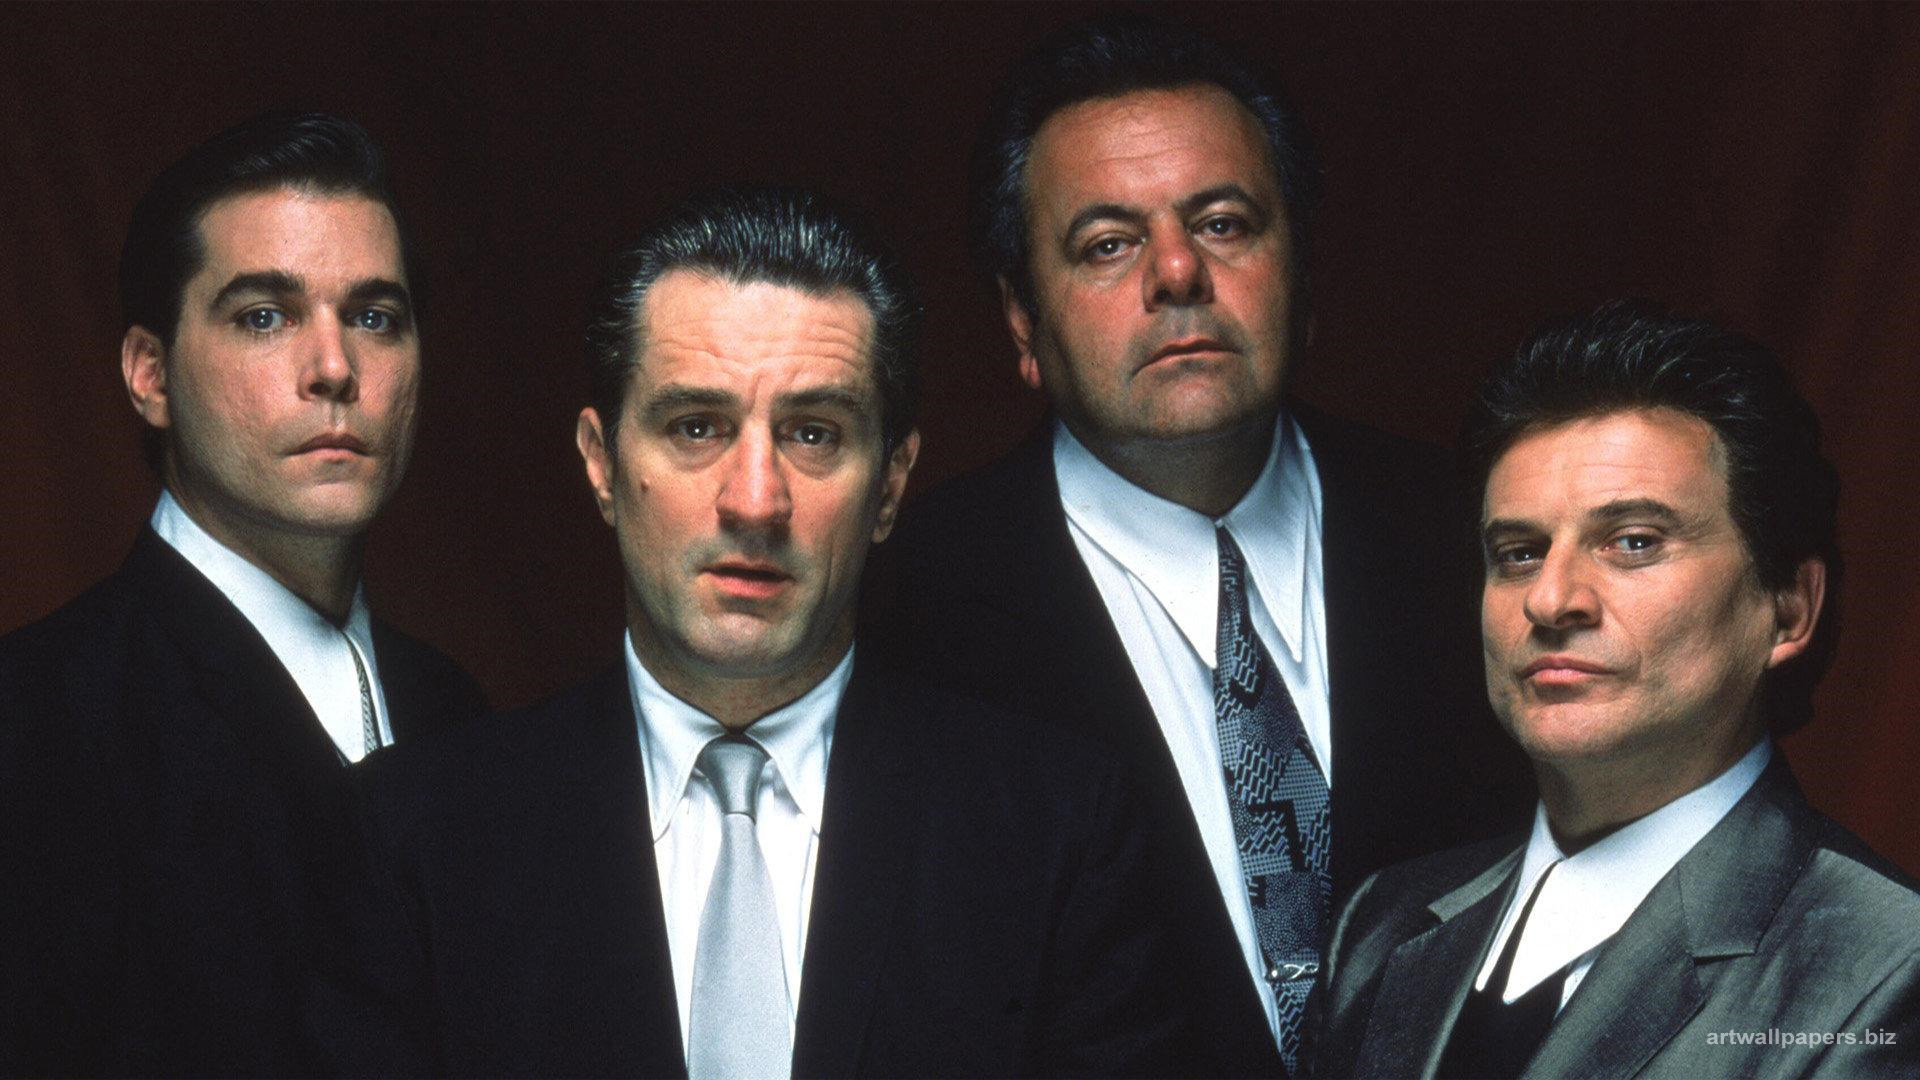 1920x1080 - Goodfellas Wallpapers 9